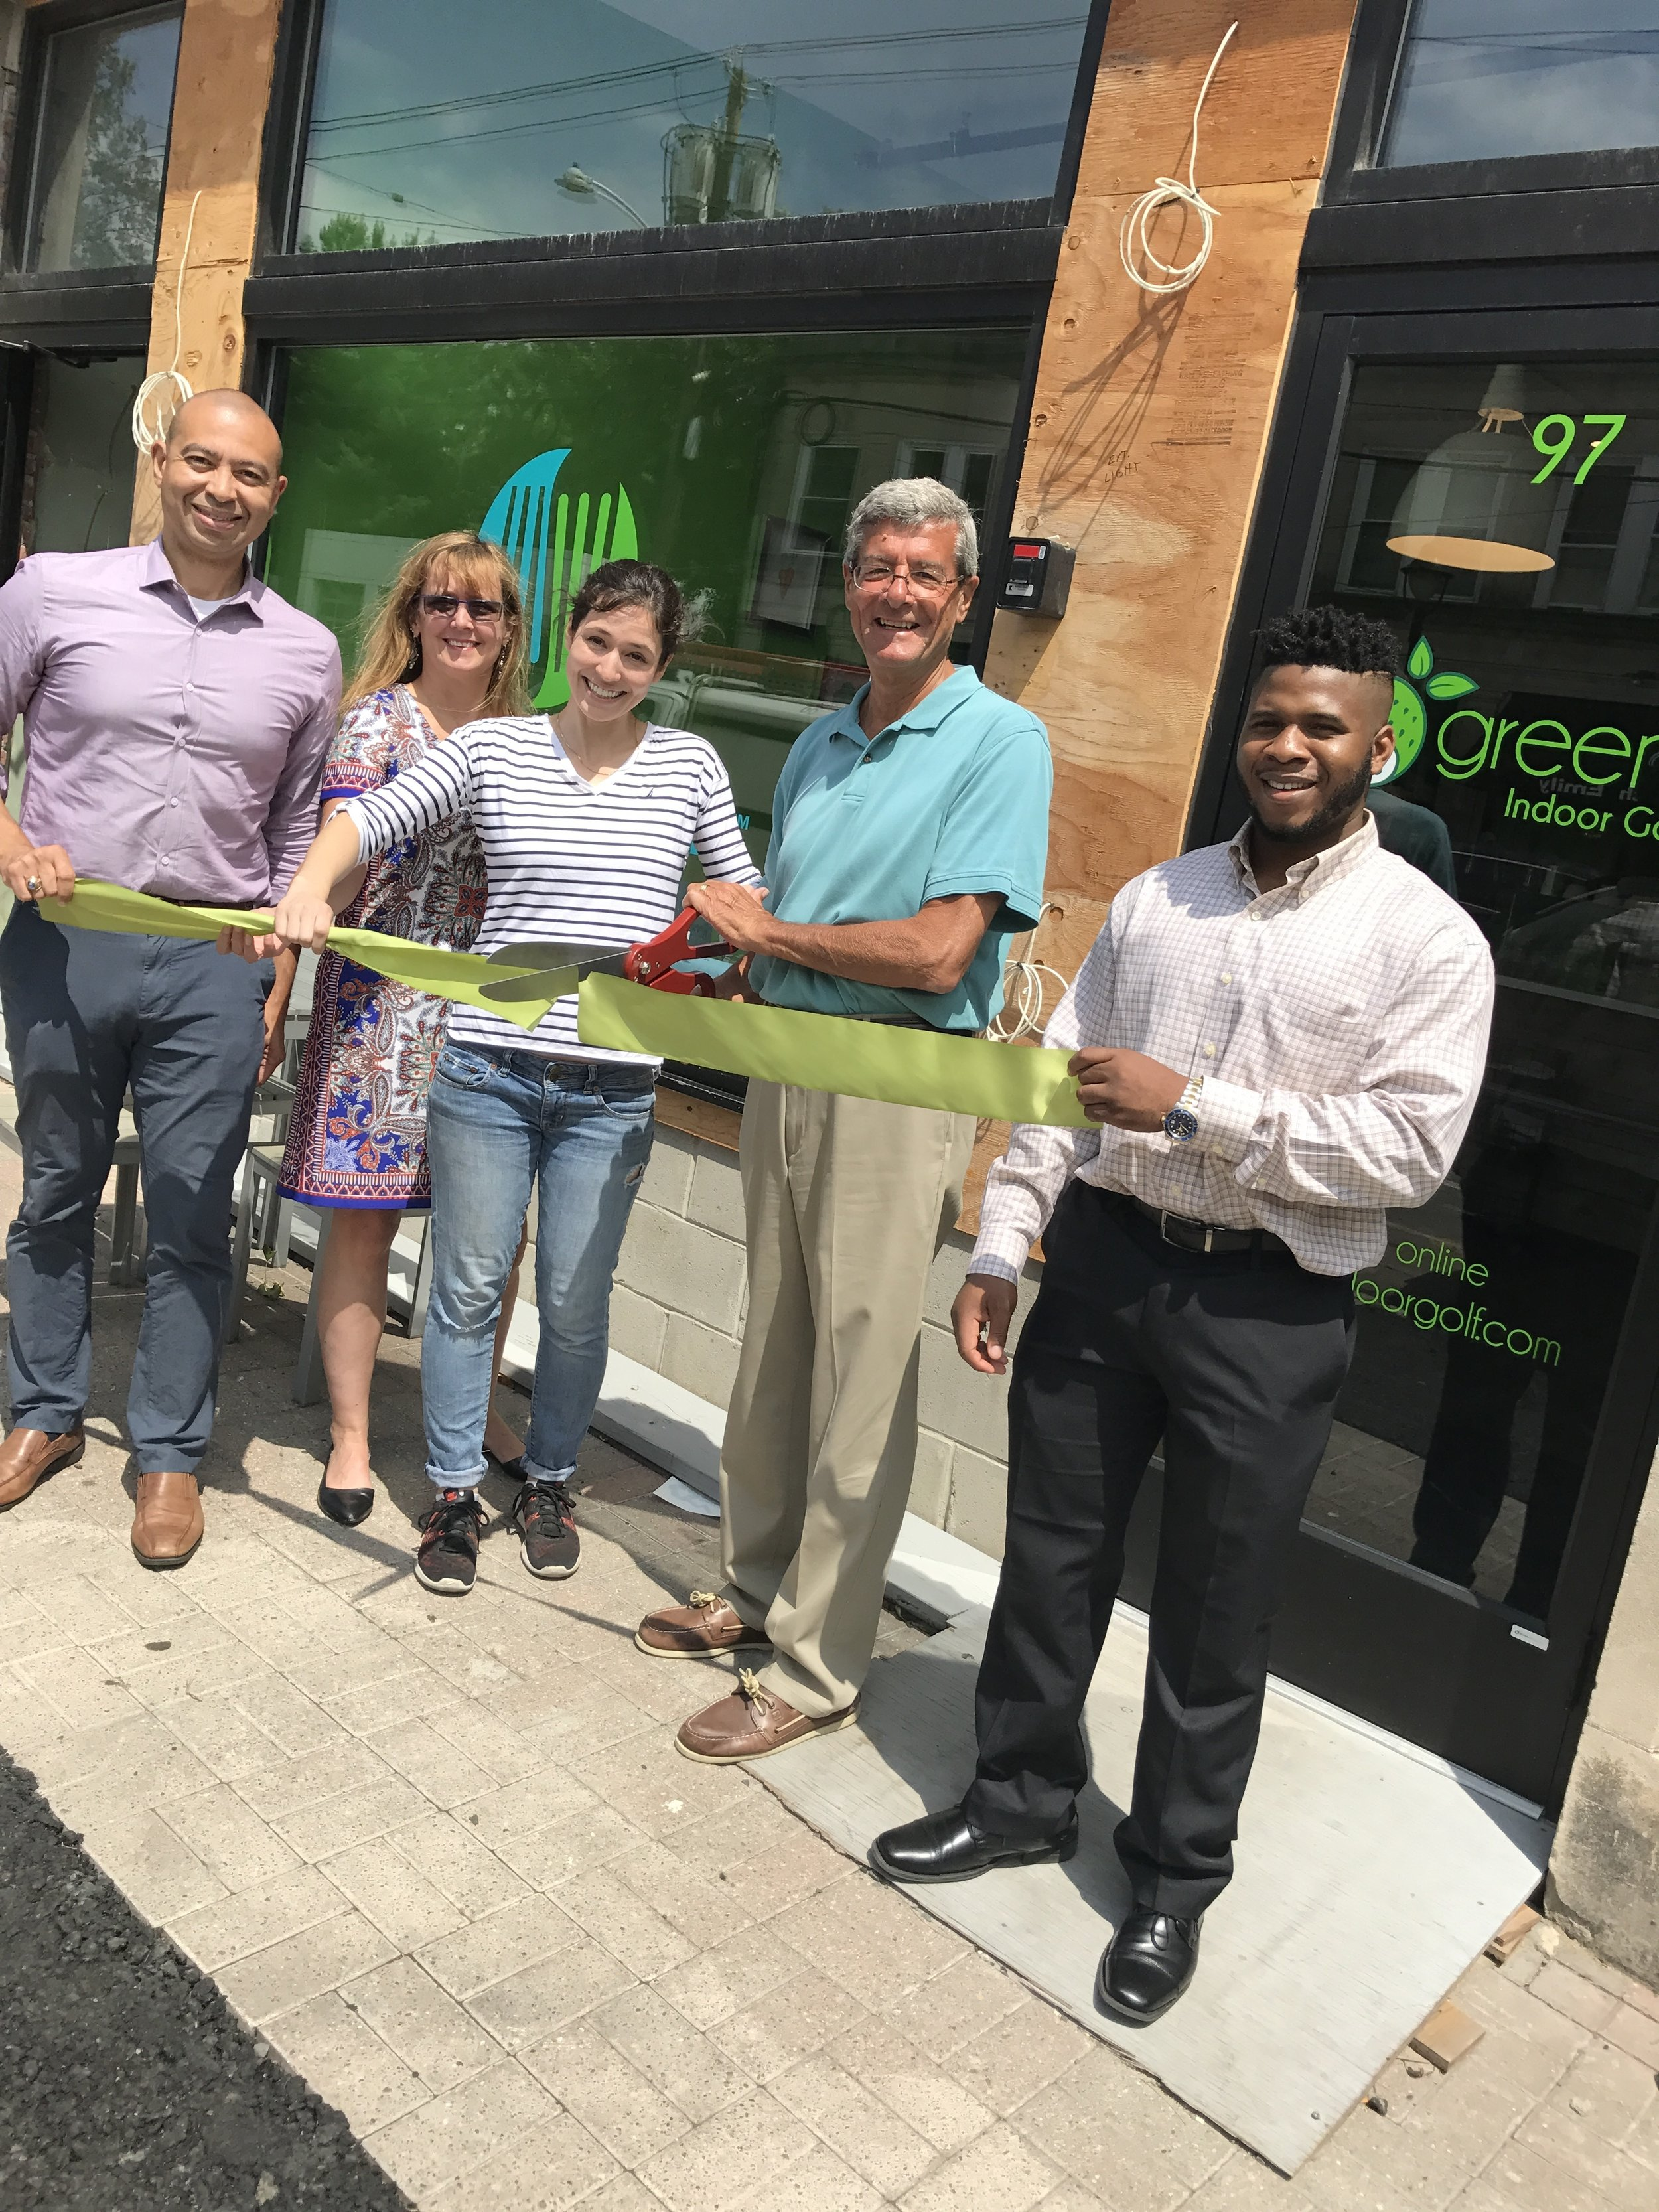 Left to right -- Township Committeeman Frank McGehee, Sheila Baker Gujral (Maplewood Environmental Advisory Committee), Nicole Grogan (ConsciousFork), Mayor Vic DeLuca, Uche Uneze (Maplewood Green Business intern)